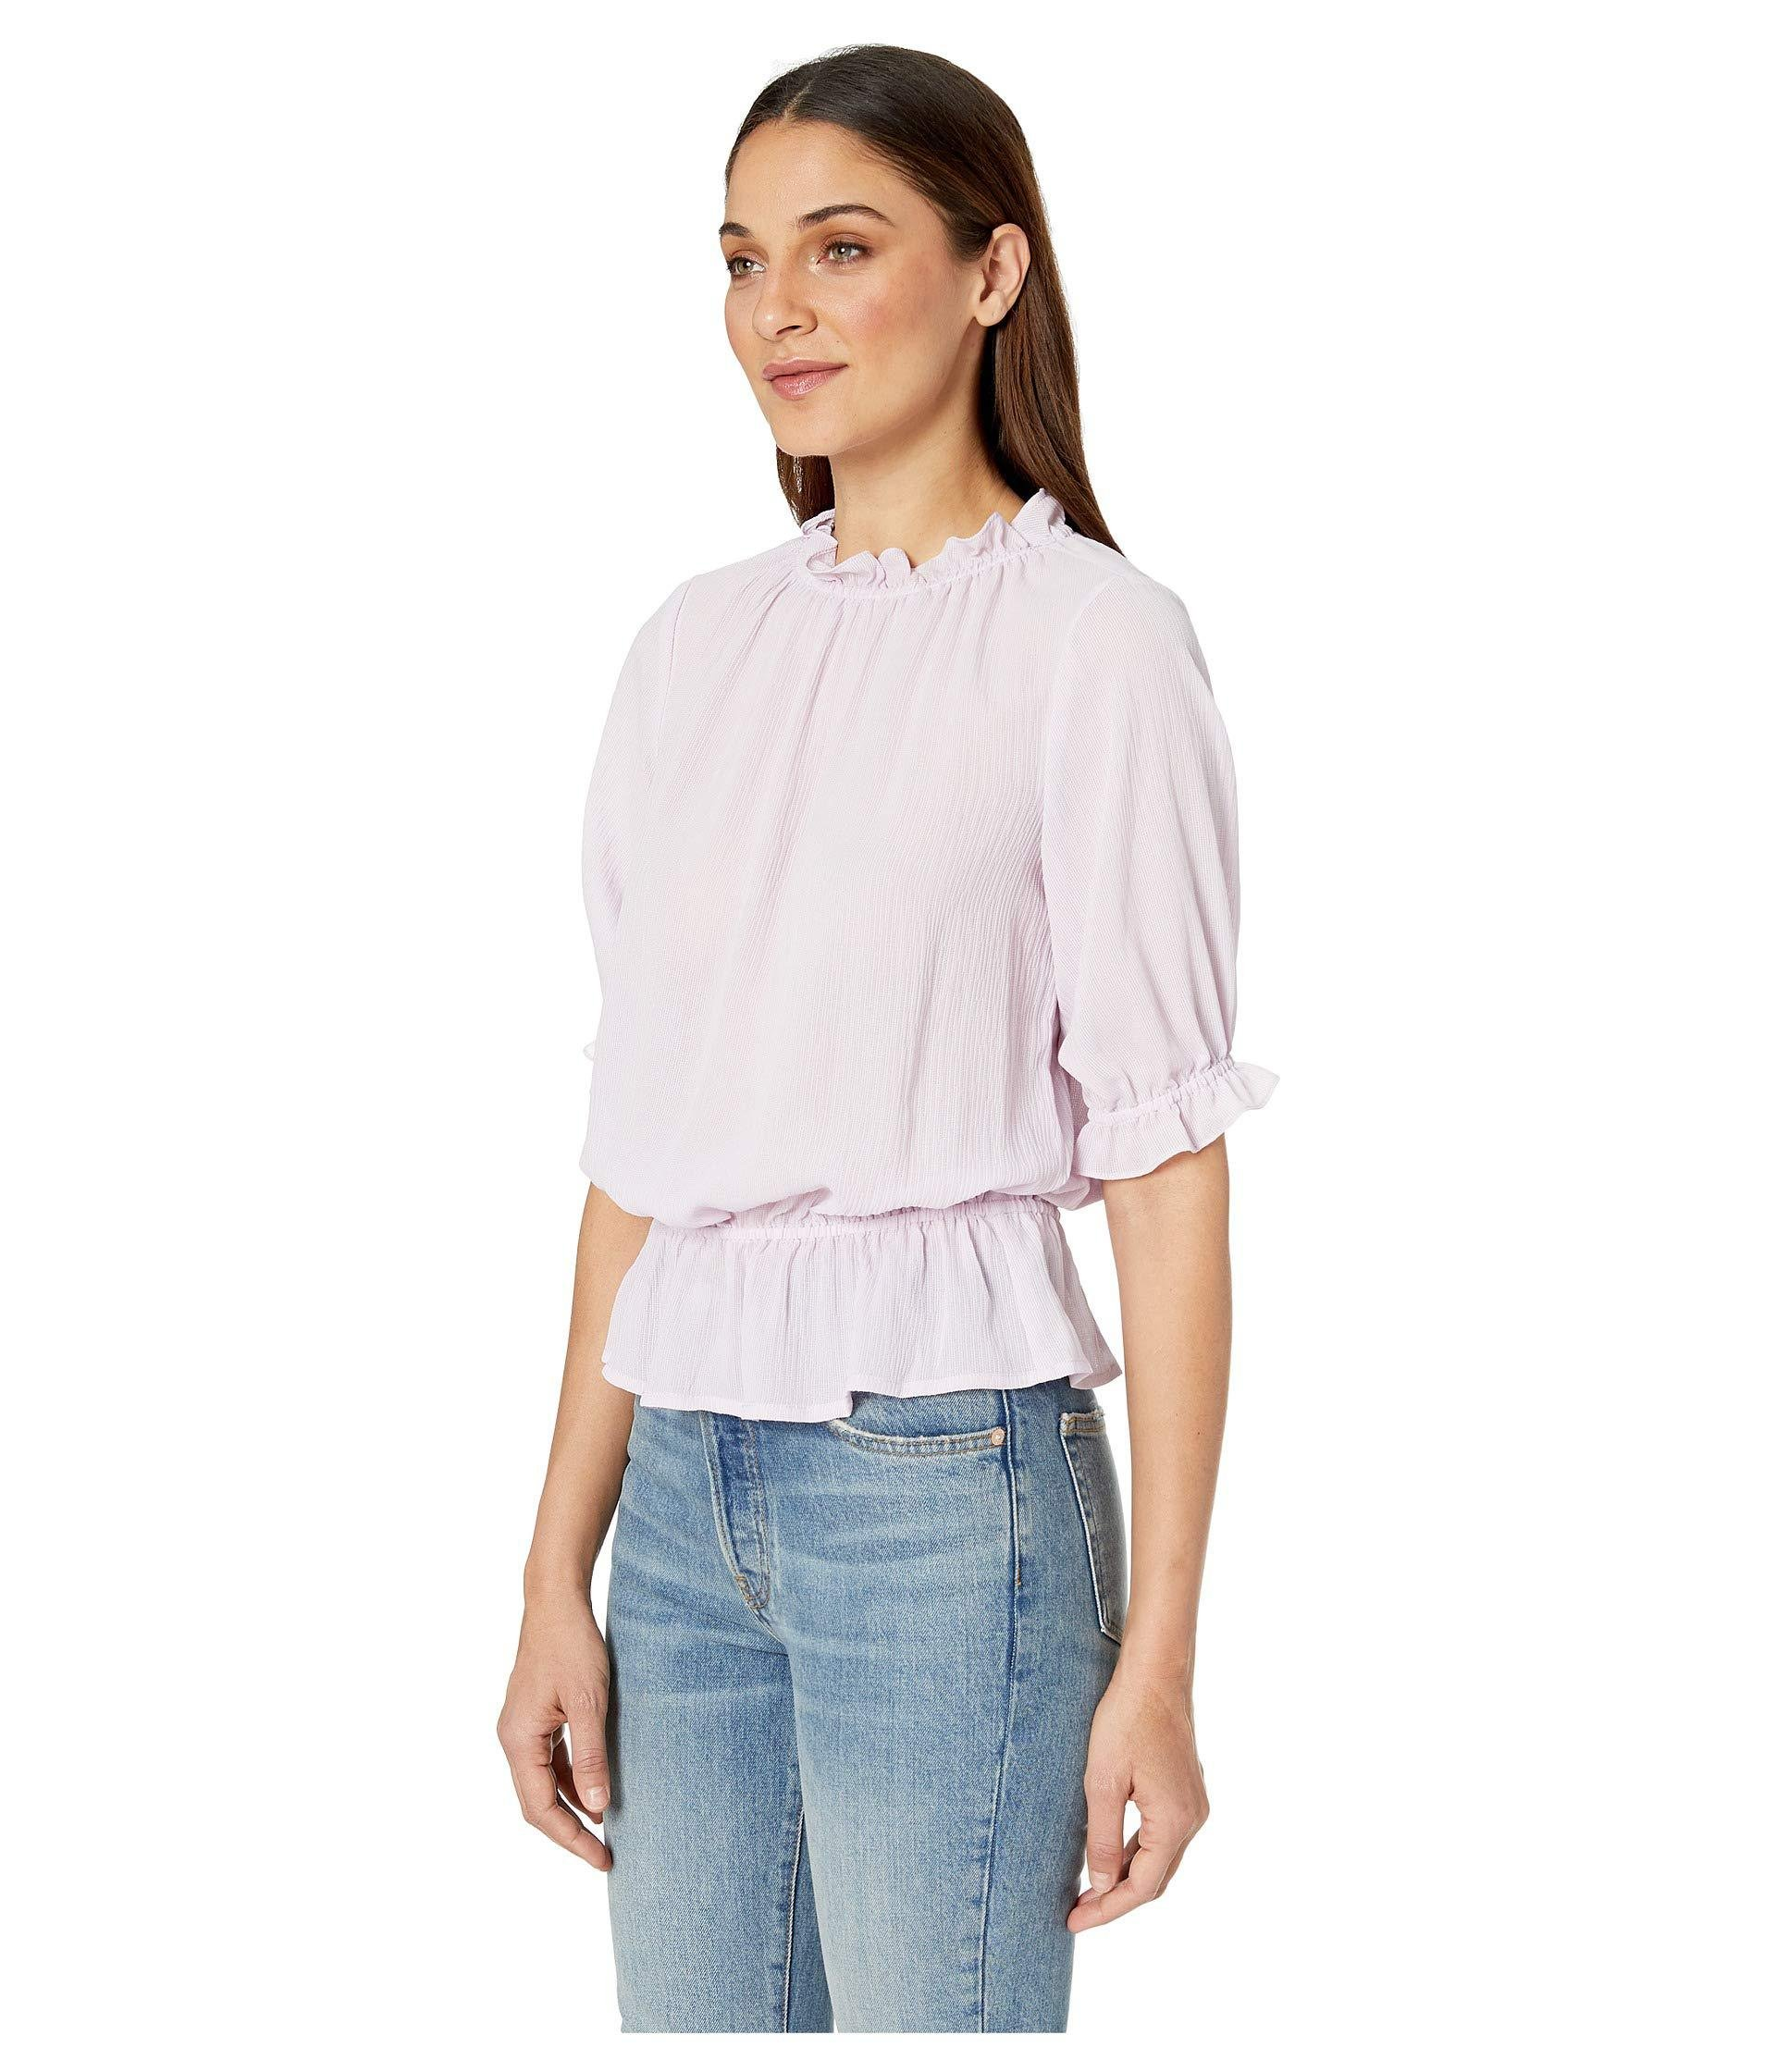 1a5058817c0356 Lyst - 1.STATE Short Sleeve Mock Neck Micro Check Ruffle Blouse (orchid  Rose) Women s Blouse in White